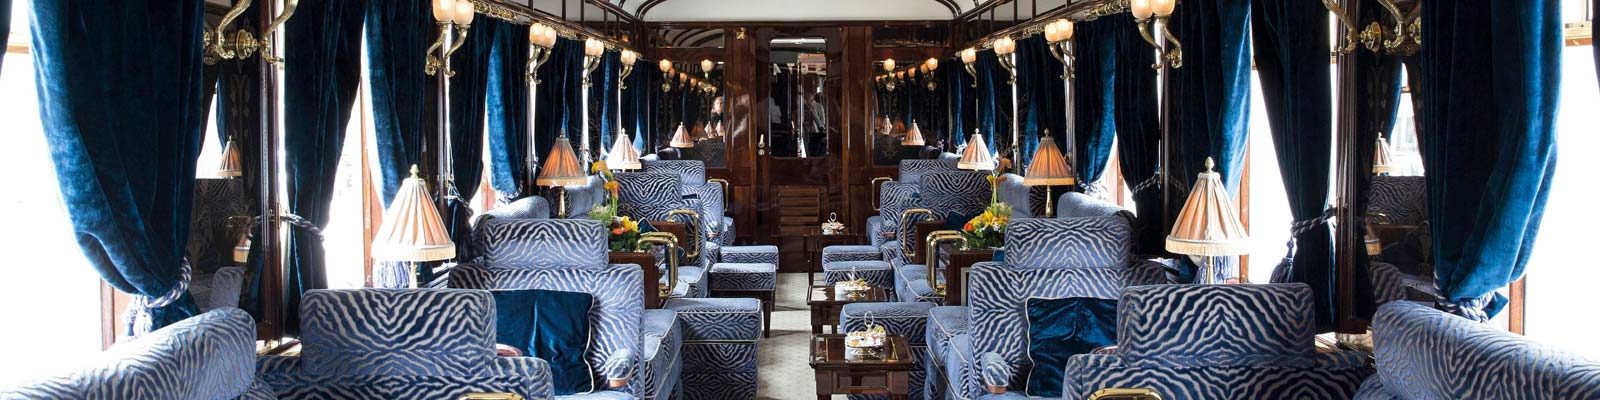 Venice Simplon orient Express Luxury Train Journeys